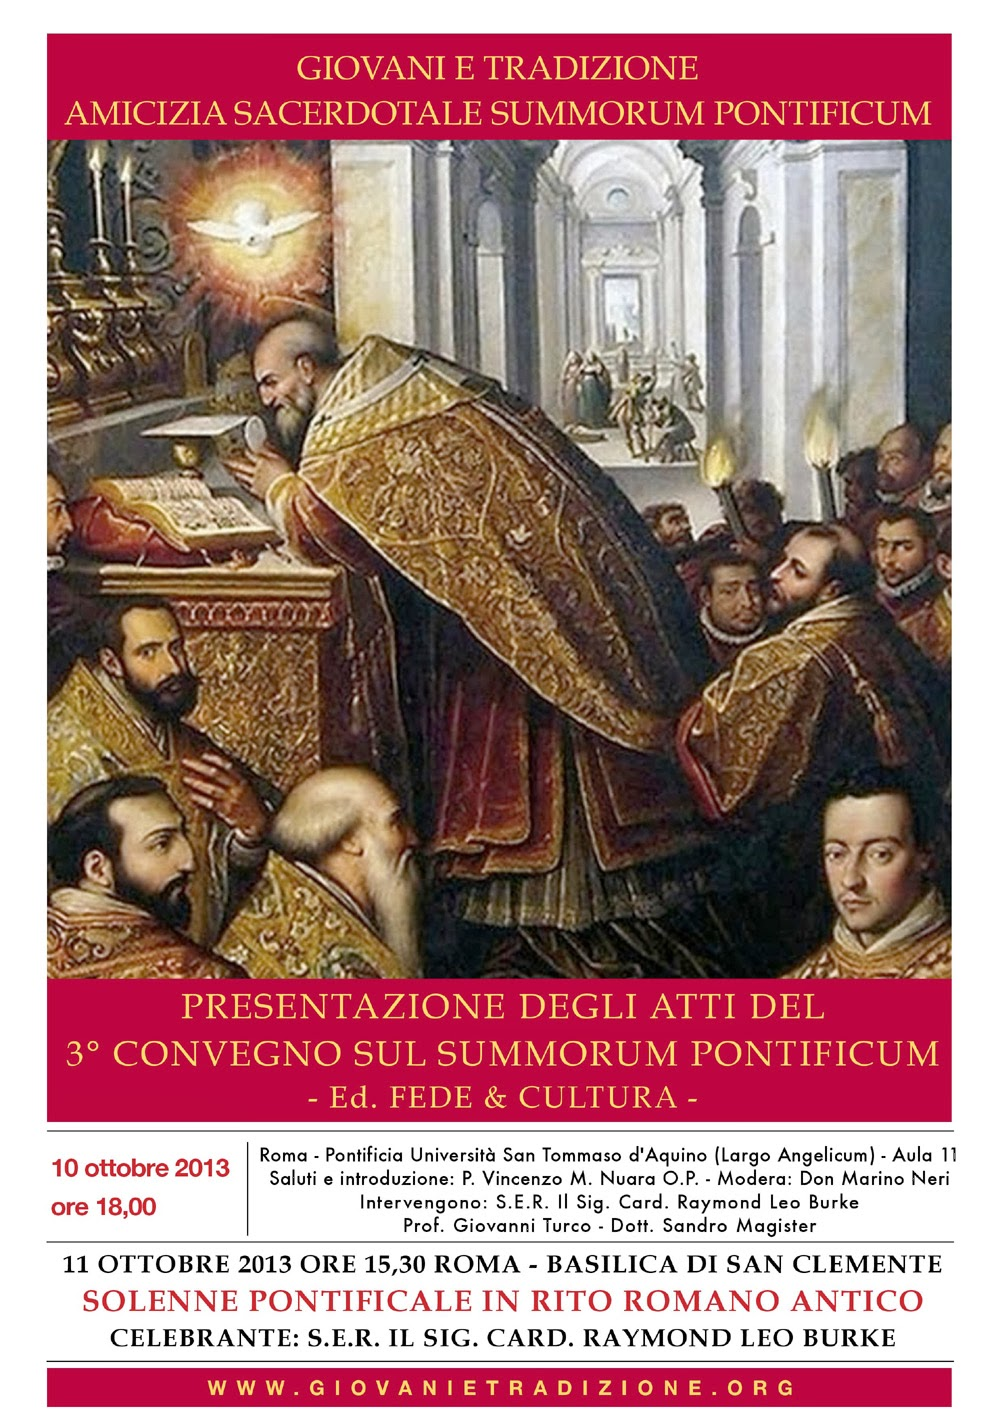 RORATE CÆLI: October in Rome - important events reminder